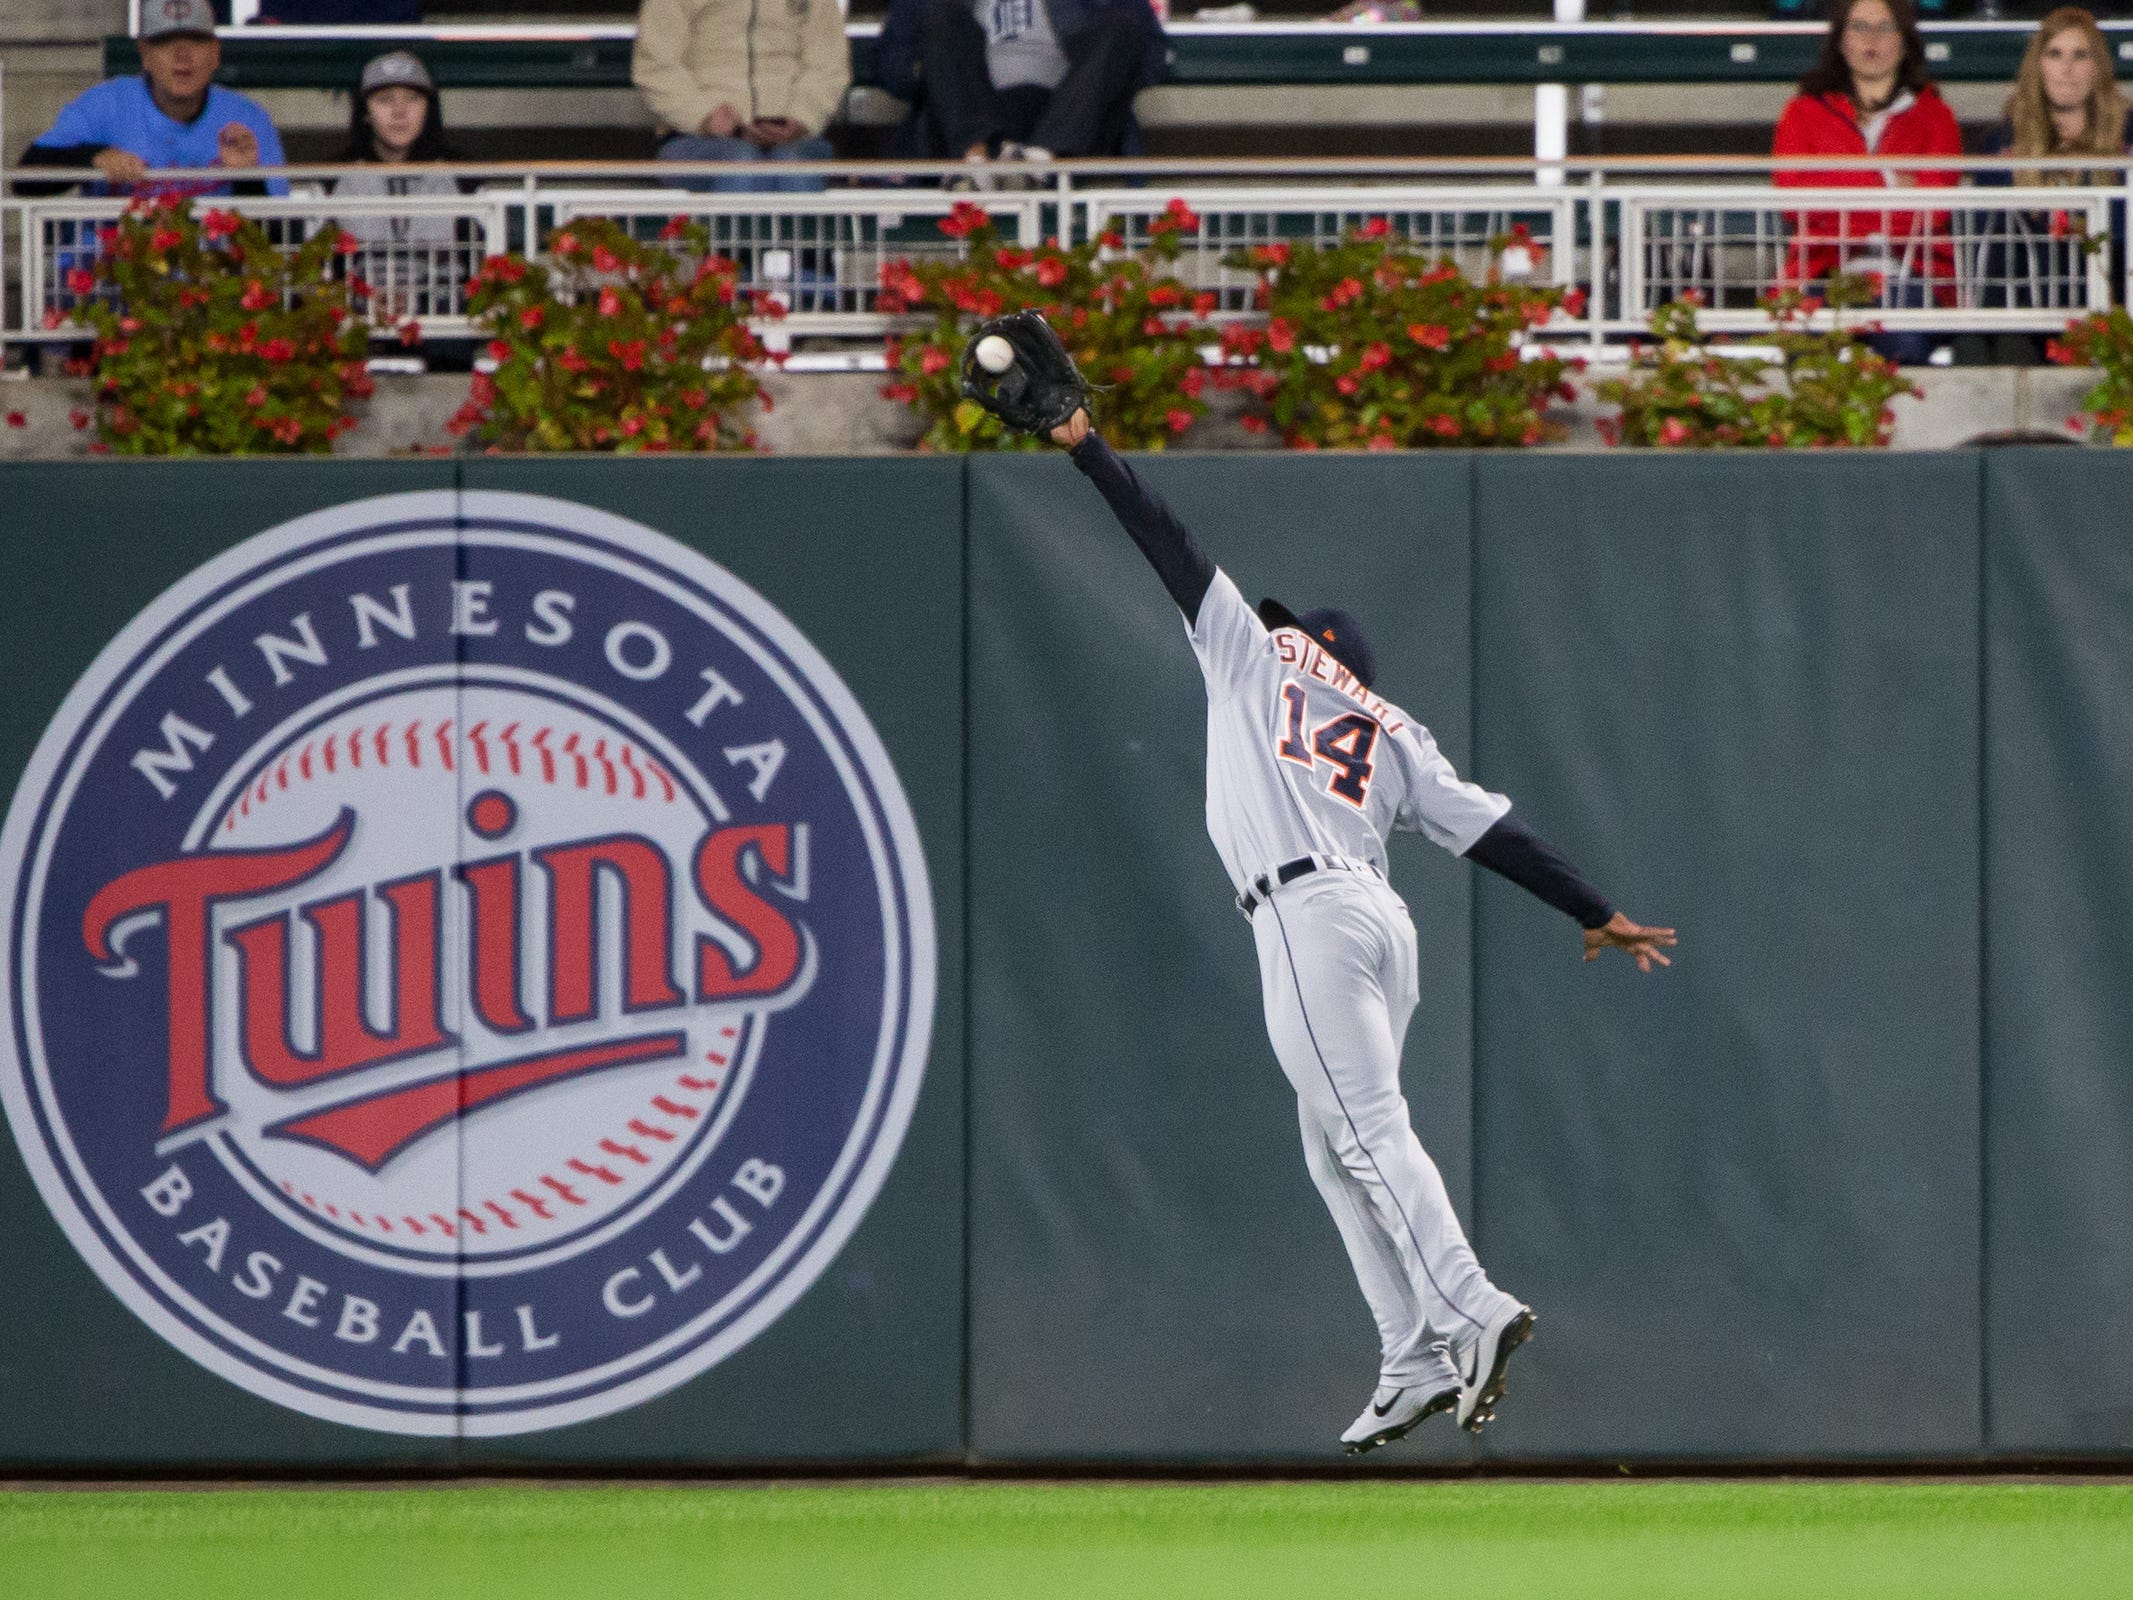 Sept. 27, 2018 in Minneapolis, Minn.: Detroit Tigers outfielder Christin Stewart makes a leaping catch in the first inning against Minnesota Twins at Target Field.